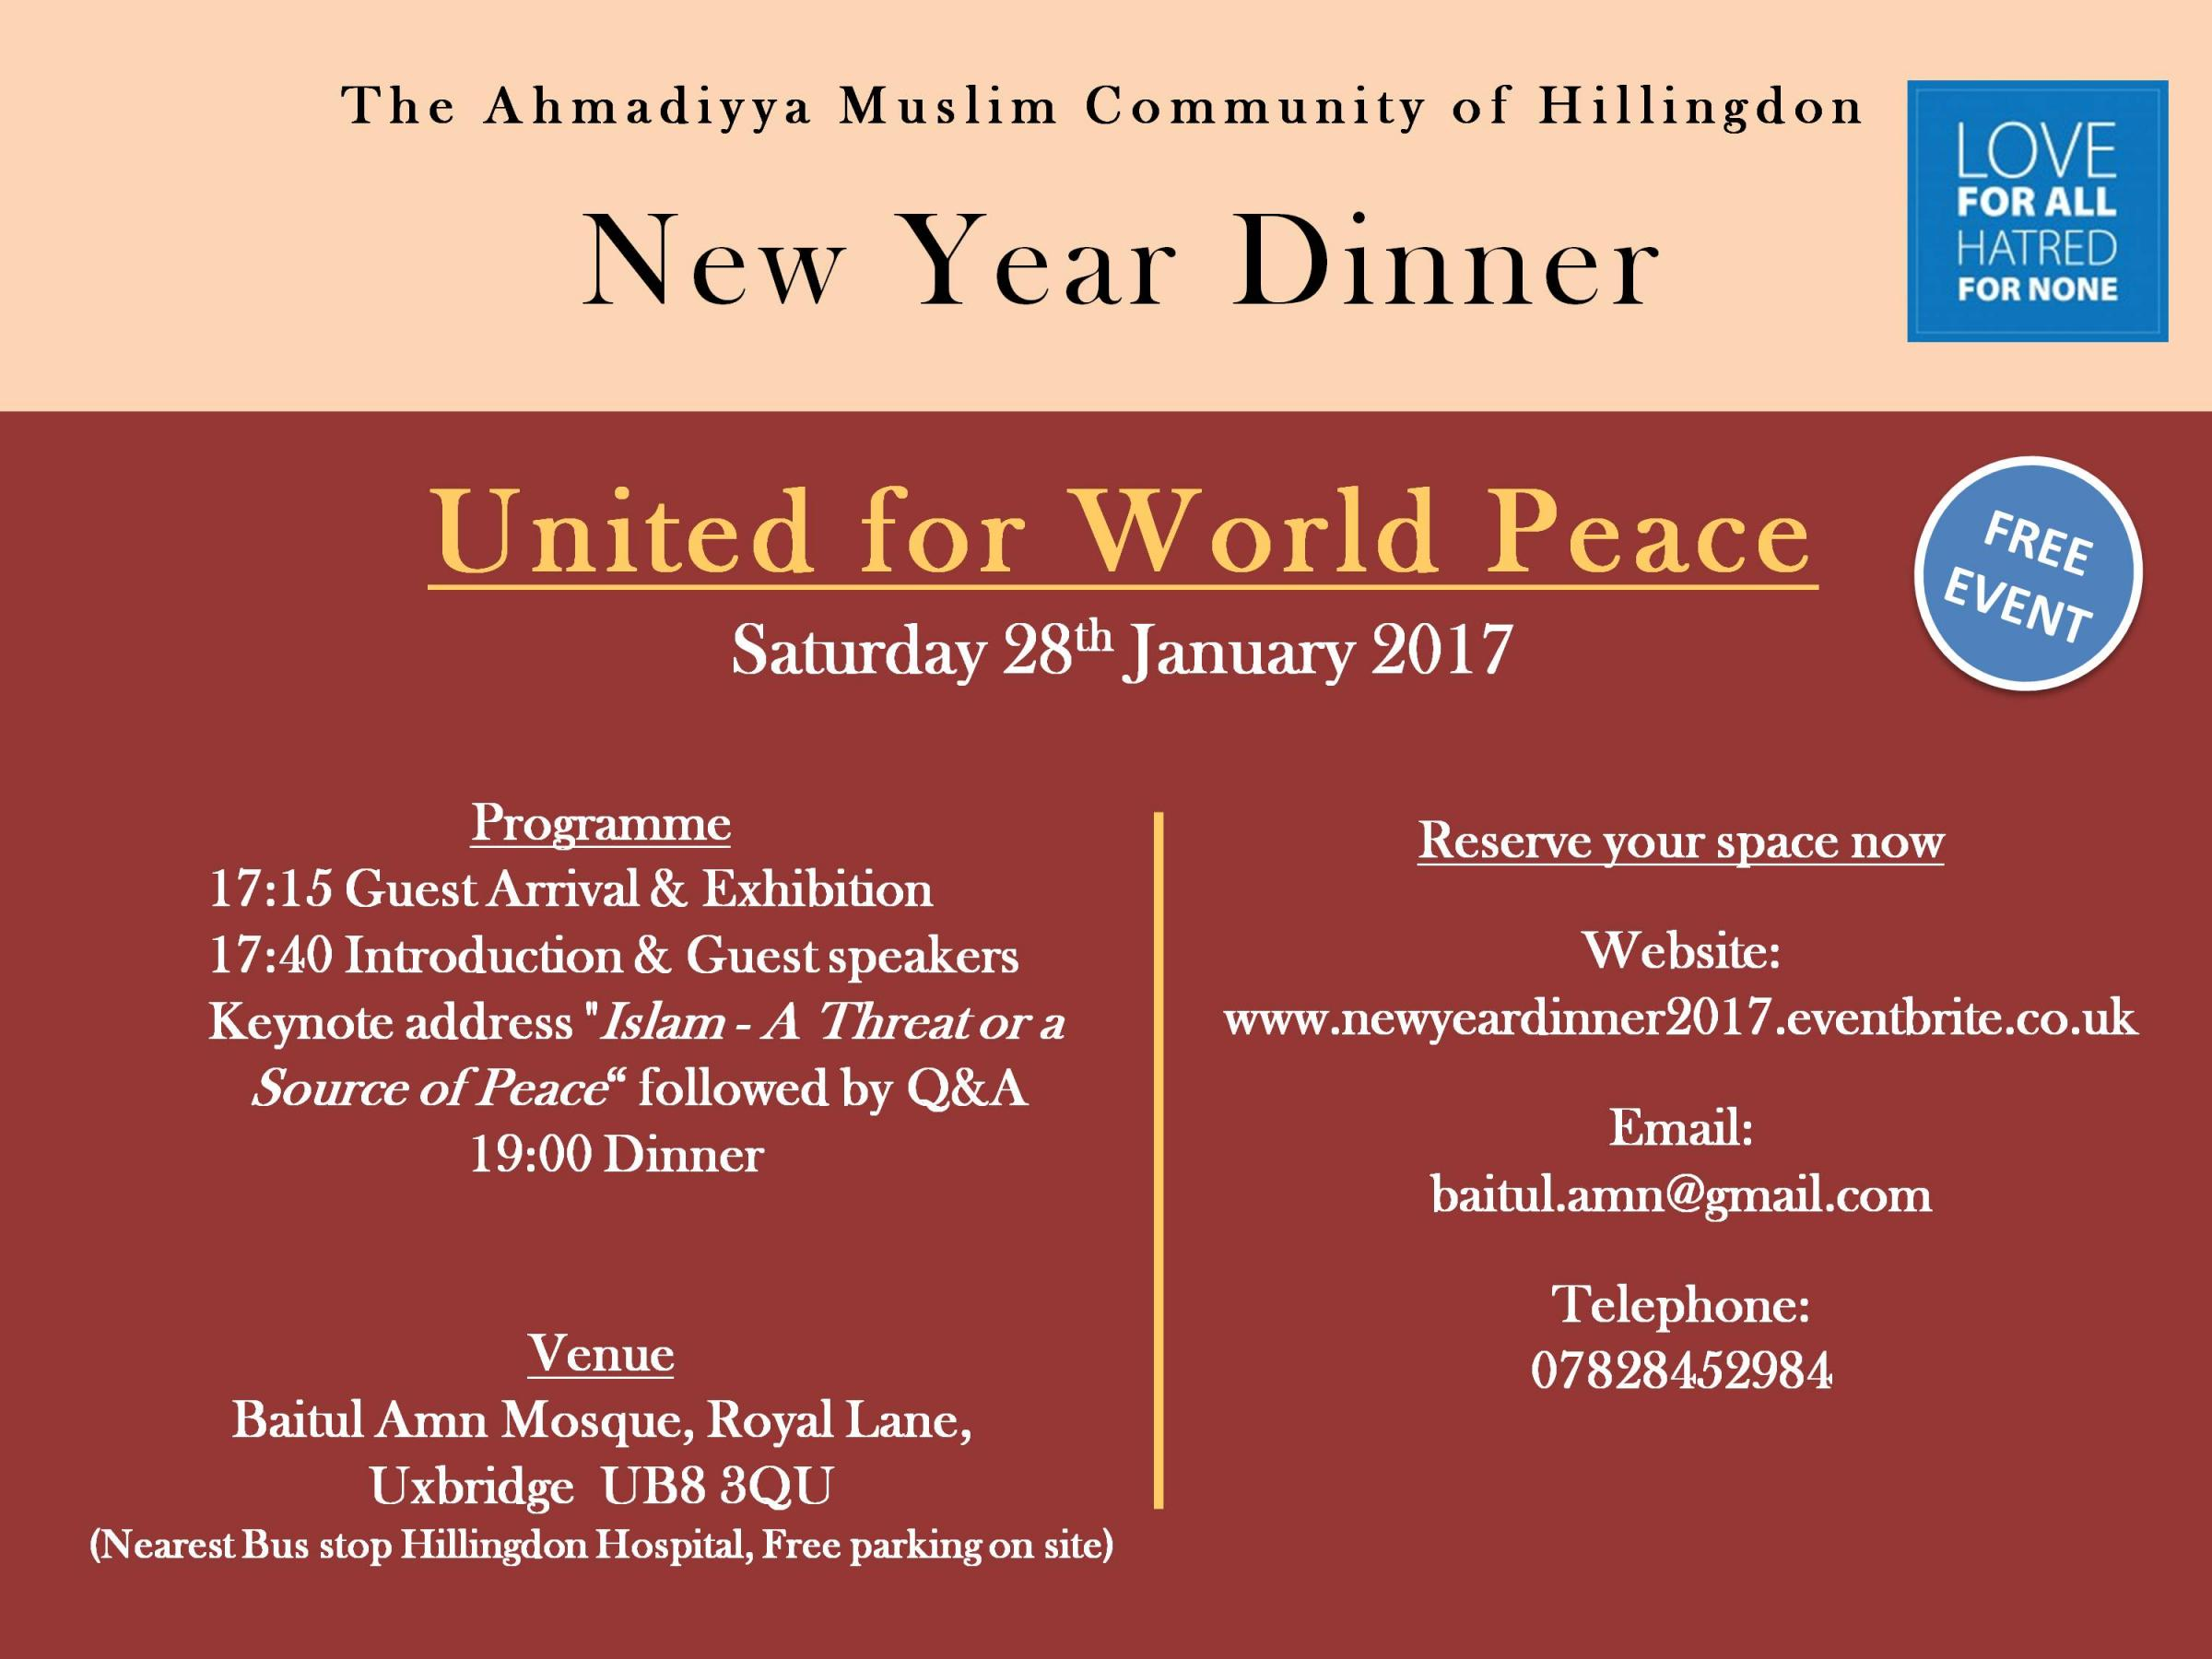 New Year Dinner 2017 - United For World Peace